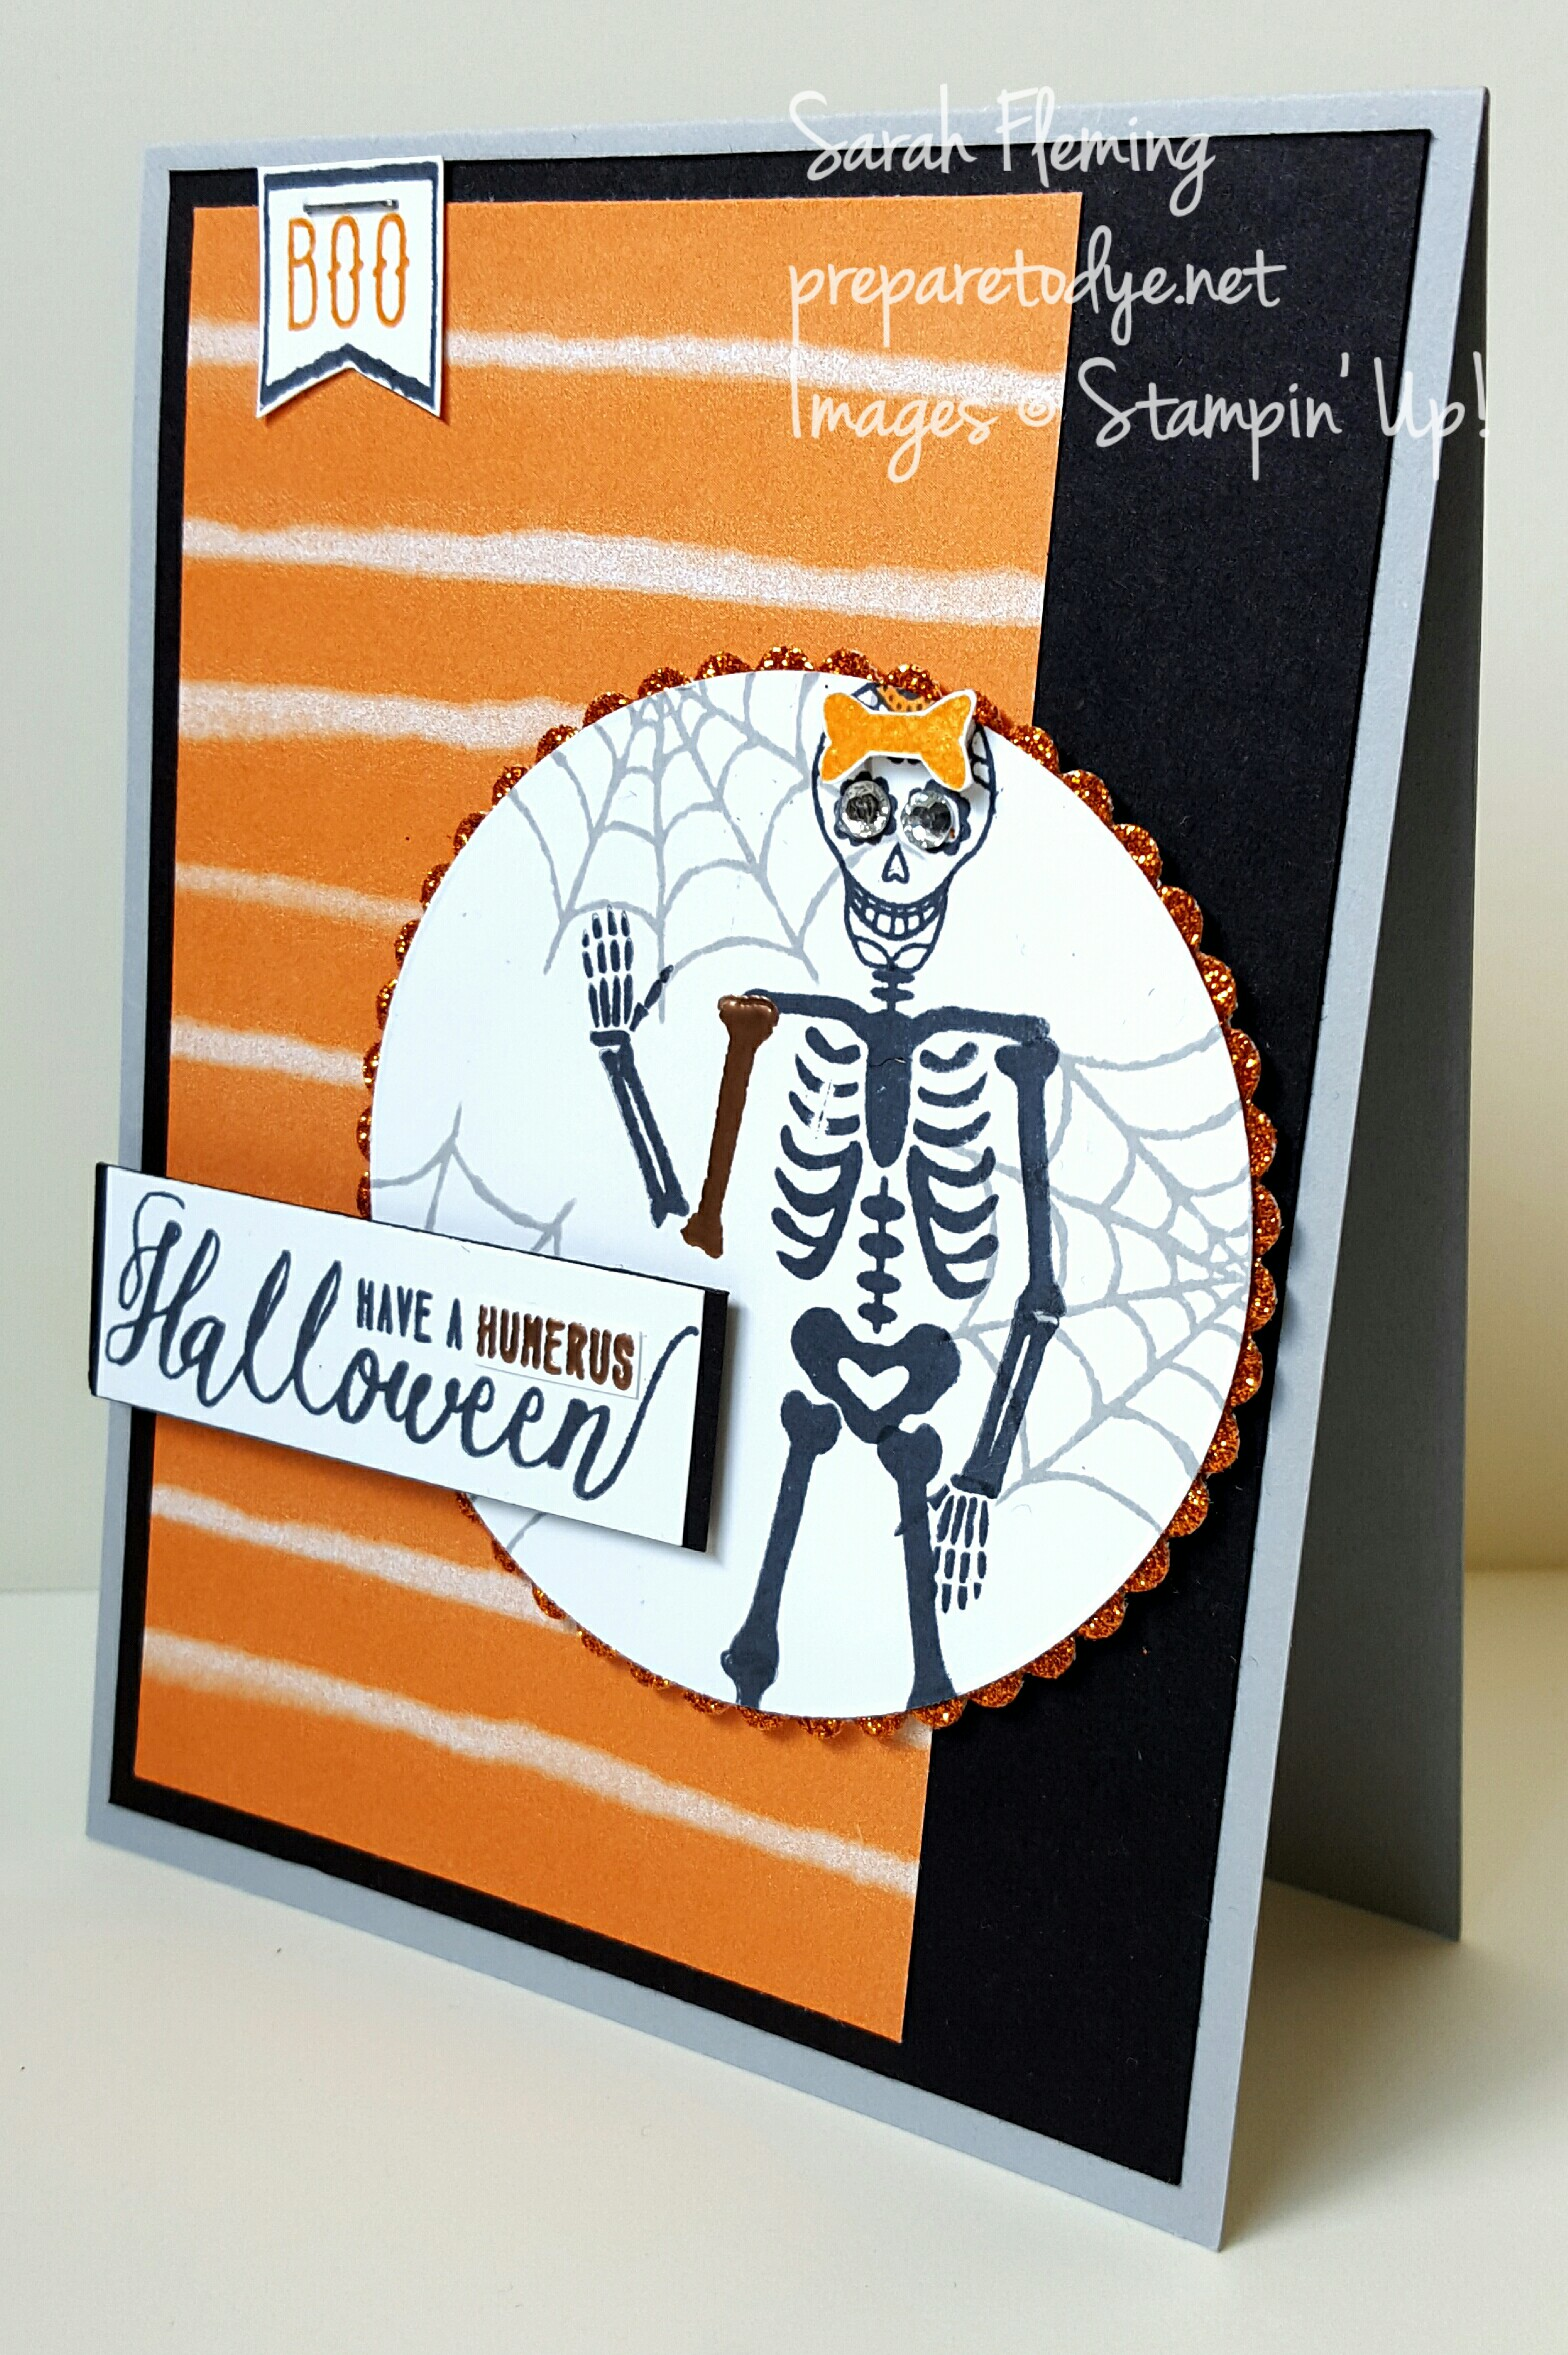 Stampin' Up! Halloween card using Mr. Funny Bones and Spooky Fun - Sarah Fleming - Prepare to Dye Papercrafts